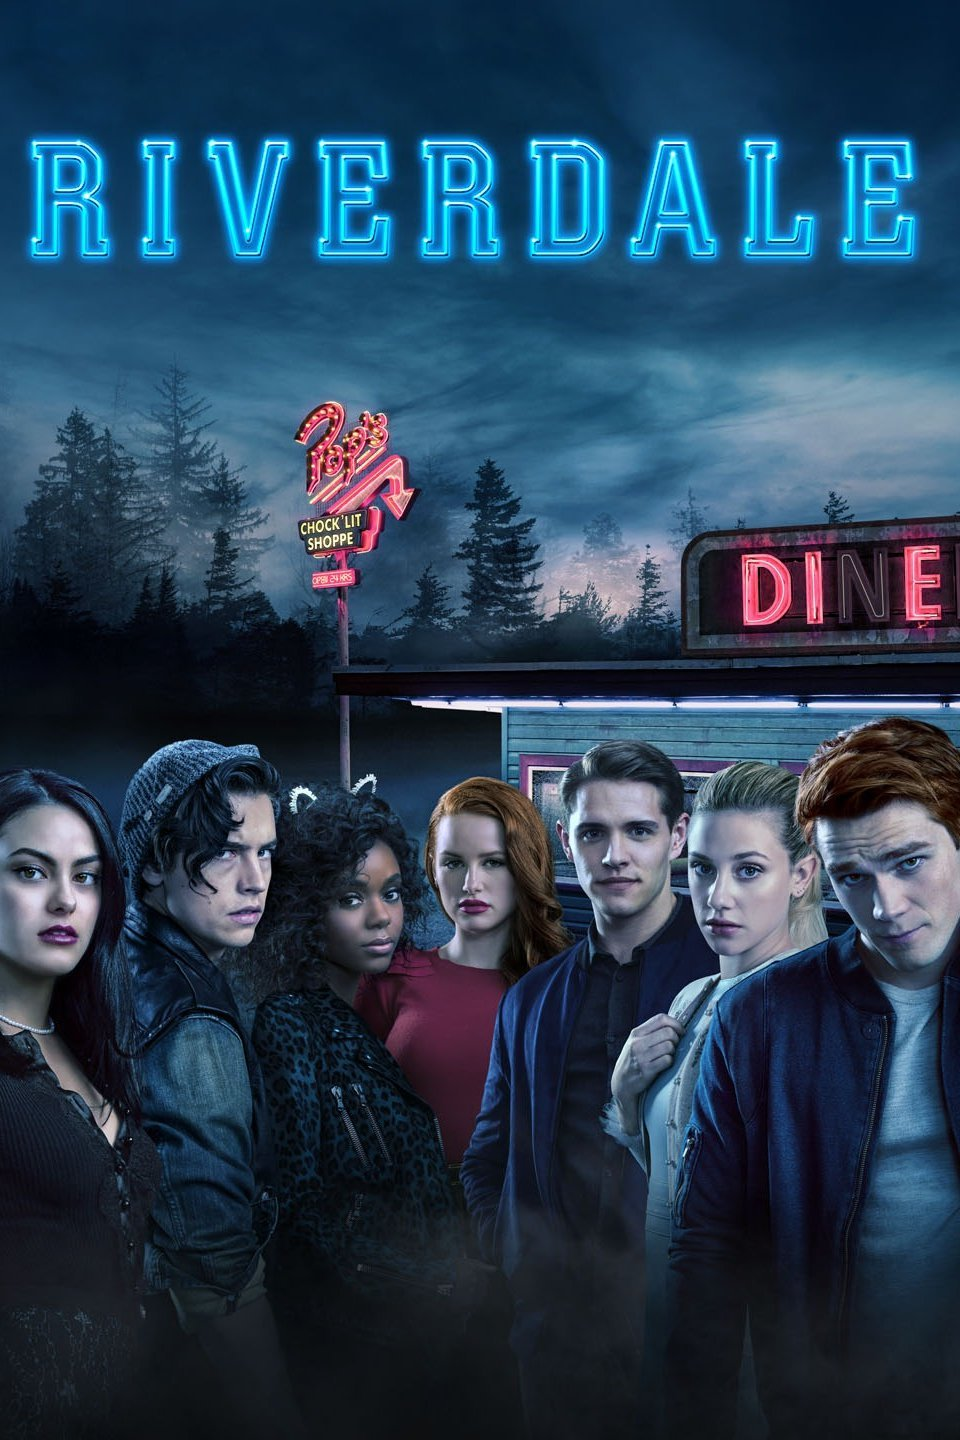 RIVERDALE - Review, Serial, episodes, tv shows, One of the